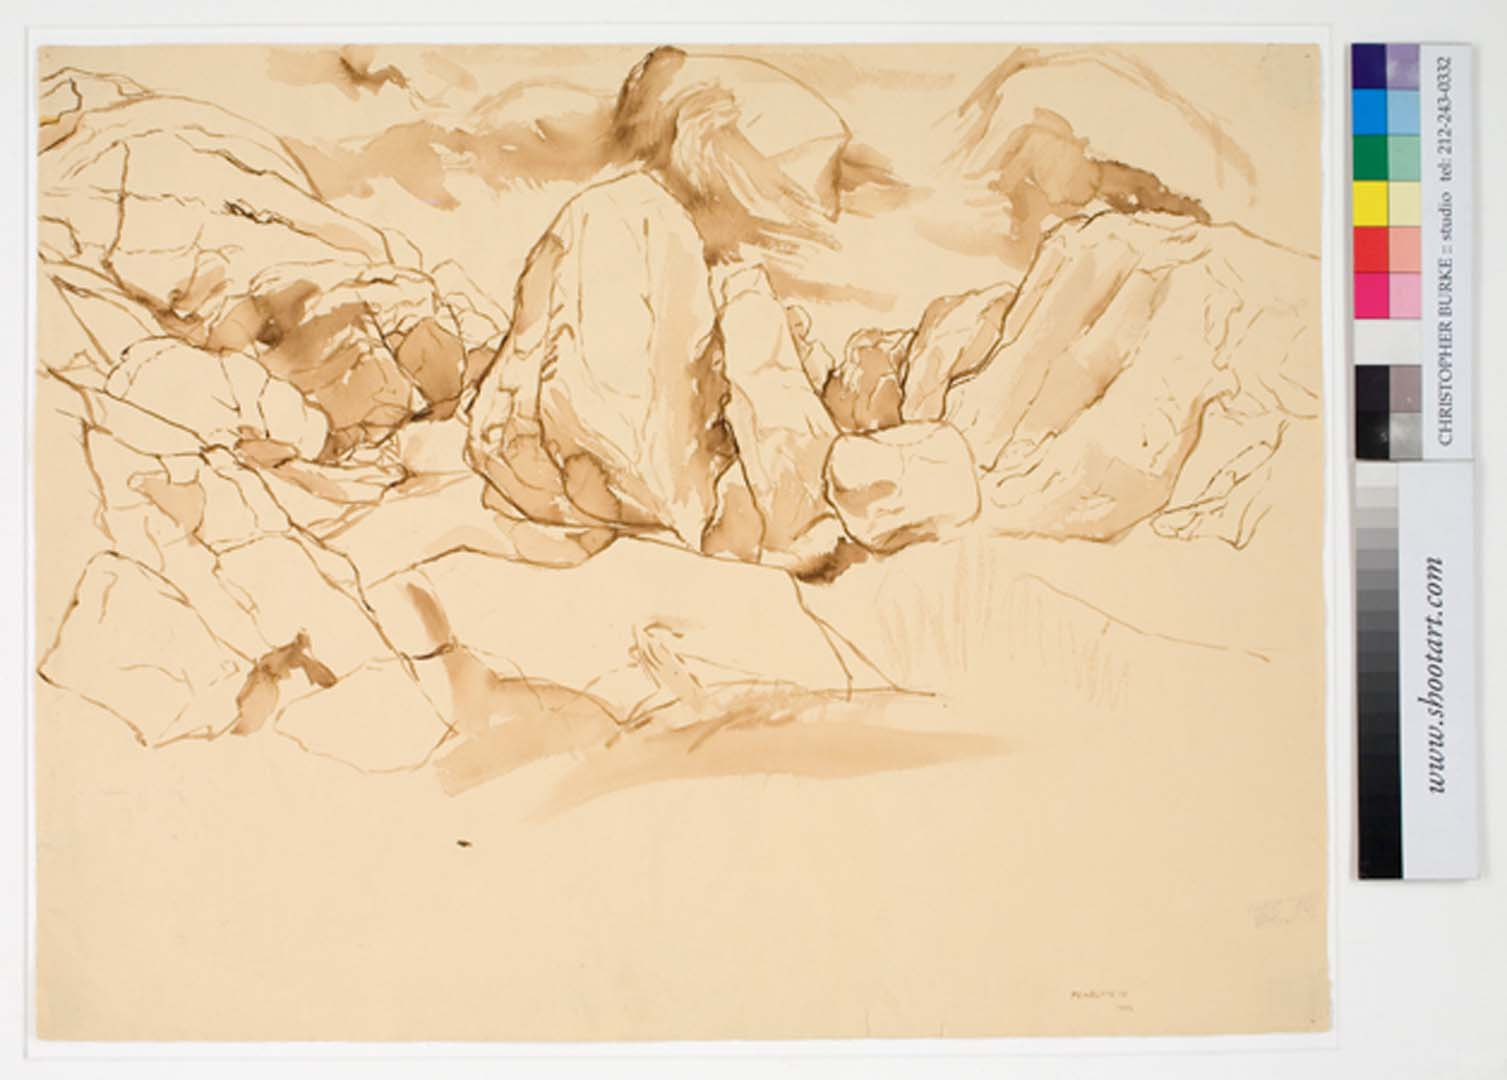 1956 Study for Oil Painting Glacier Scraped Sepia Wash on Paper 19.125 x 24.75